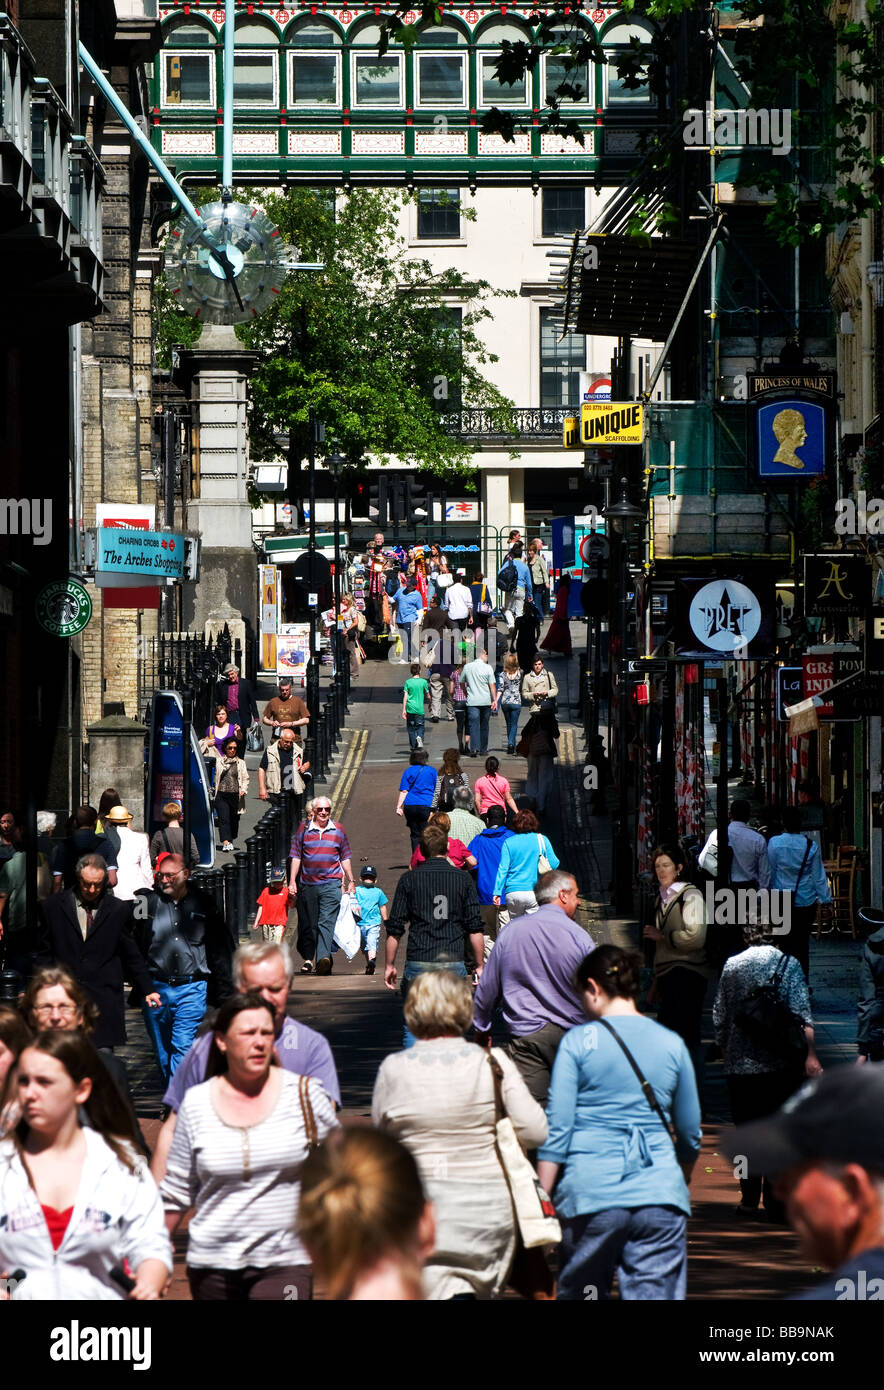 A busy street in London.  Photo by Gordon Scammell - Stock Image